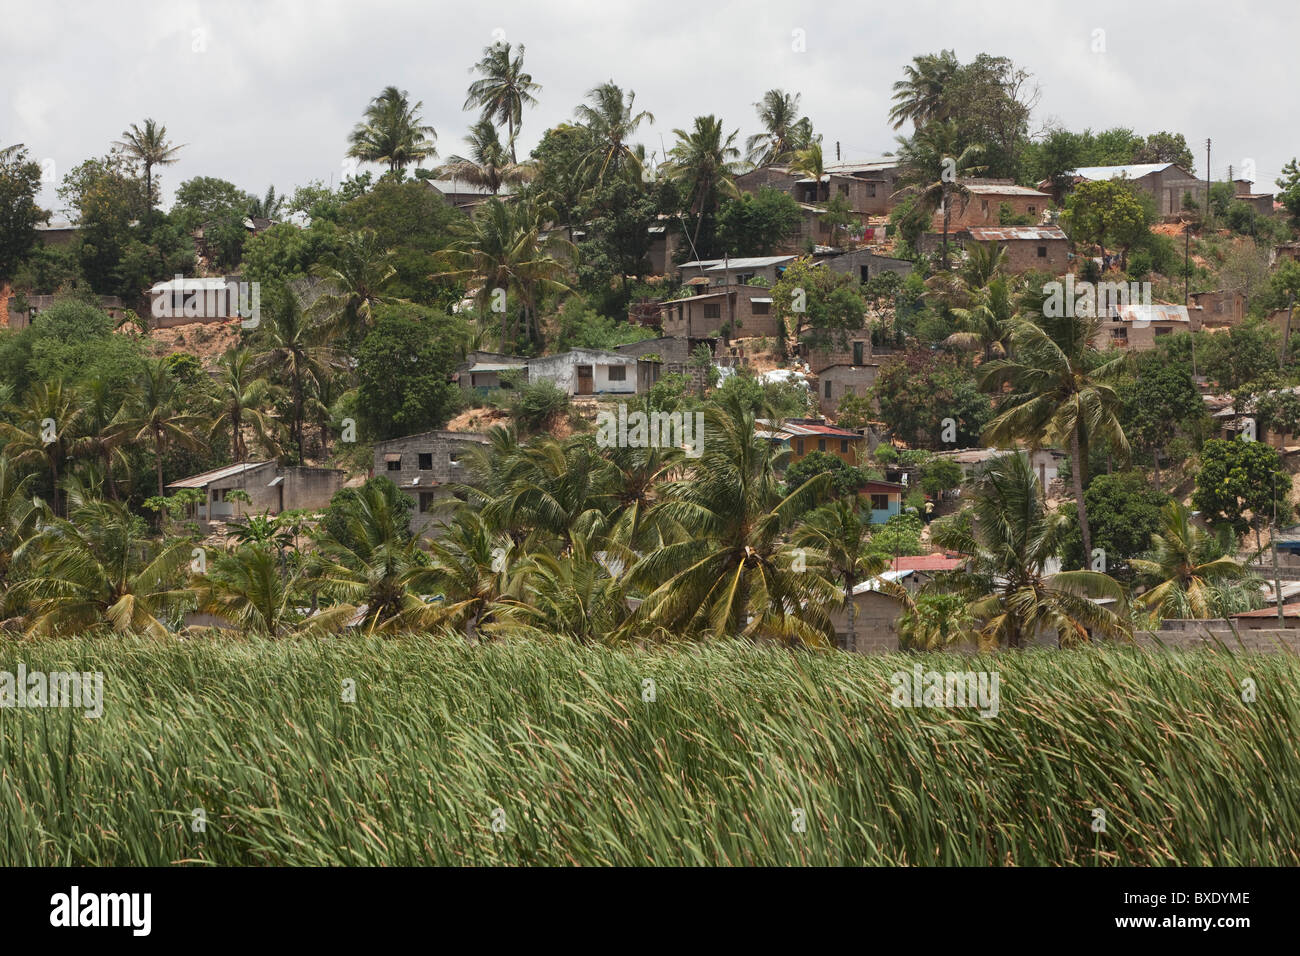 Houses on a hillside in Mbagala, Dar es Salaam, Tanzania, East Africa. - Stock Image